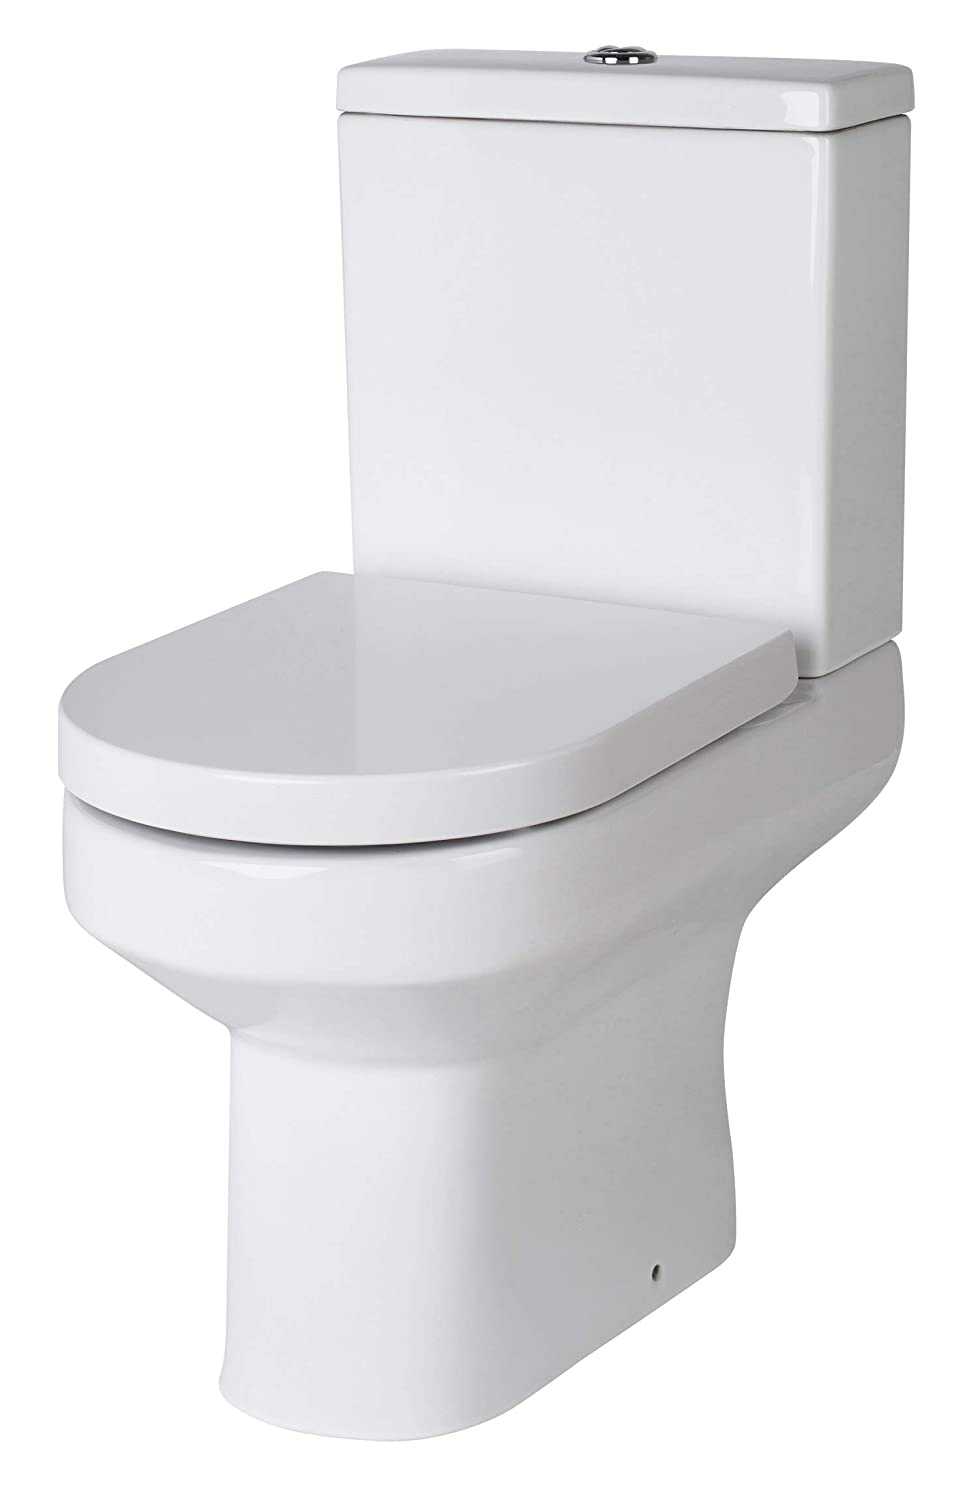 White Nuie NCH300-1PC Harmony Modern Coupled Bathroom Toilet with Dual Flush Cistern and Soft Close Seat